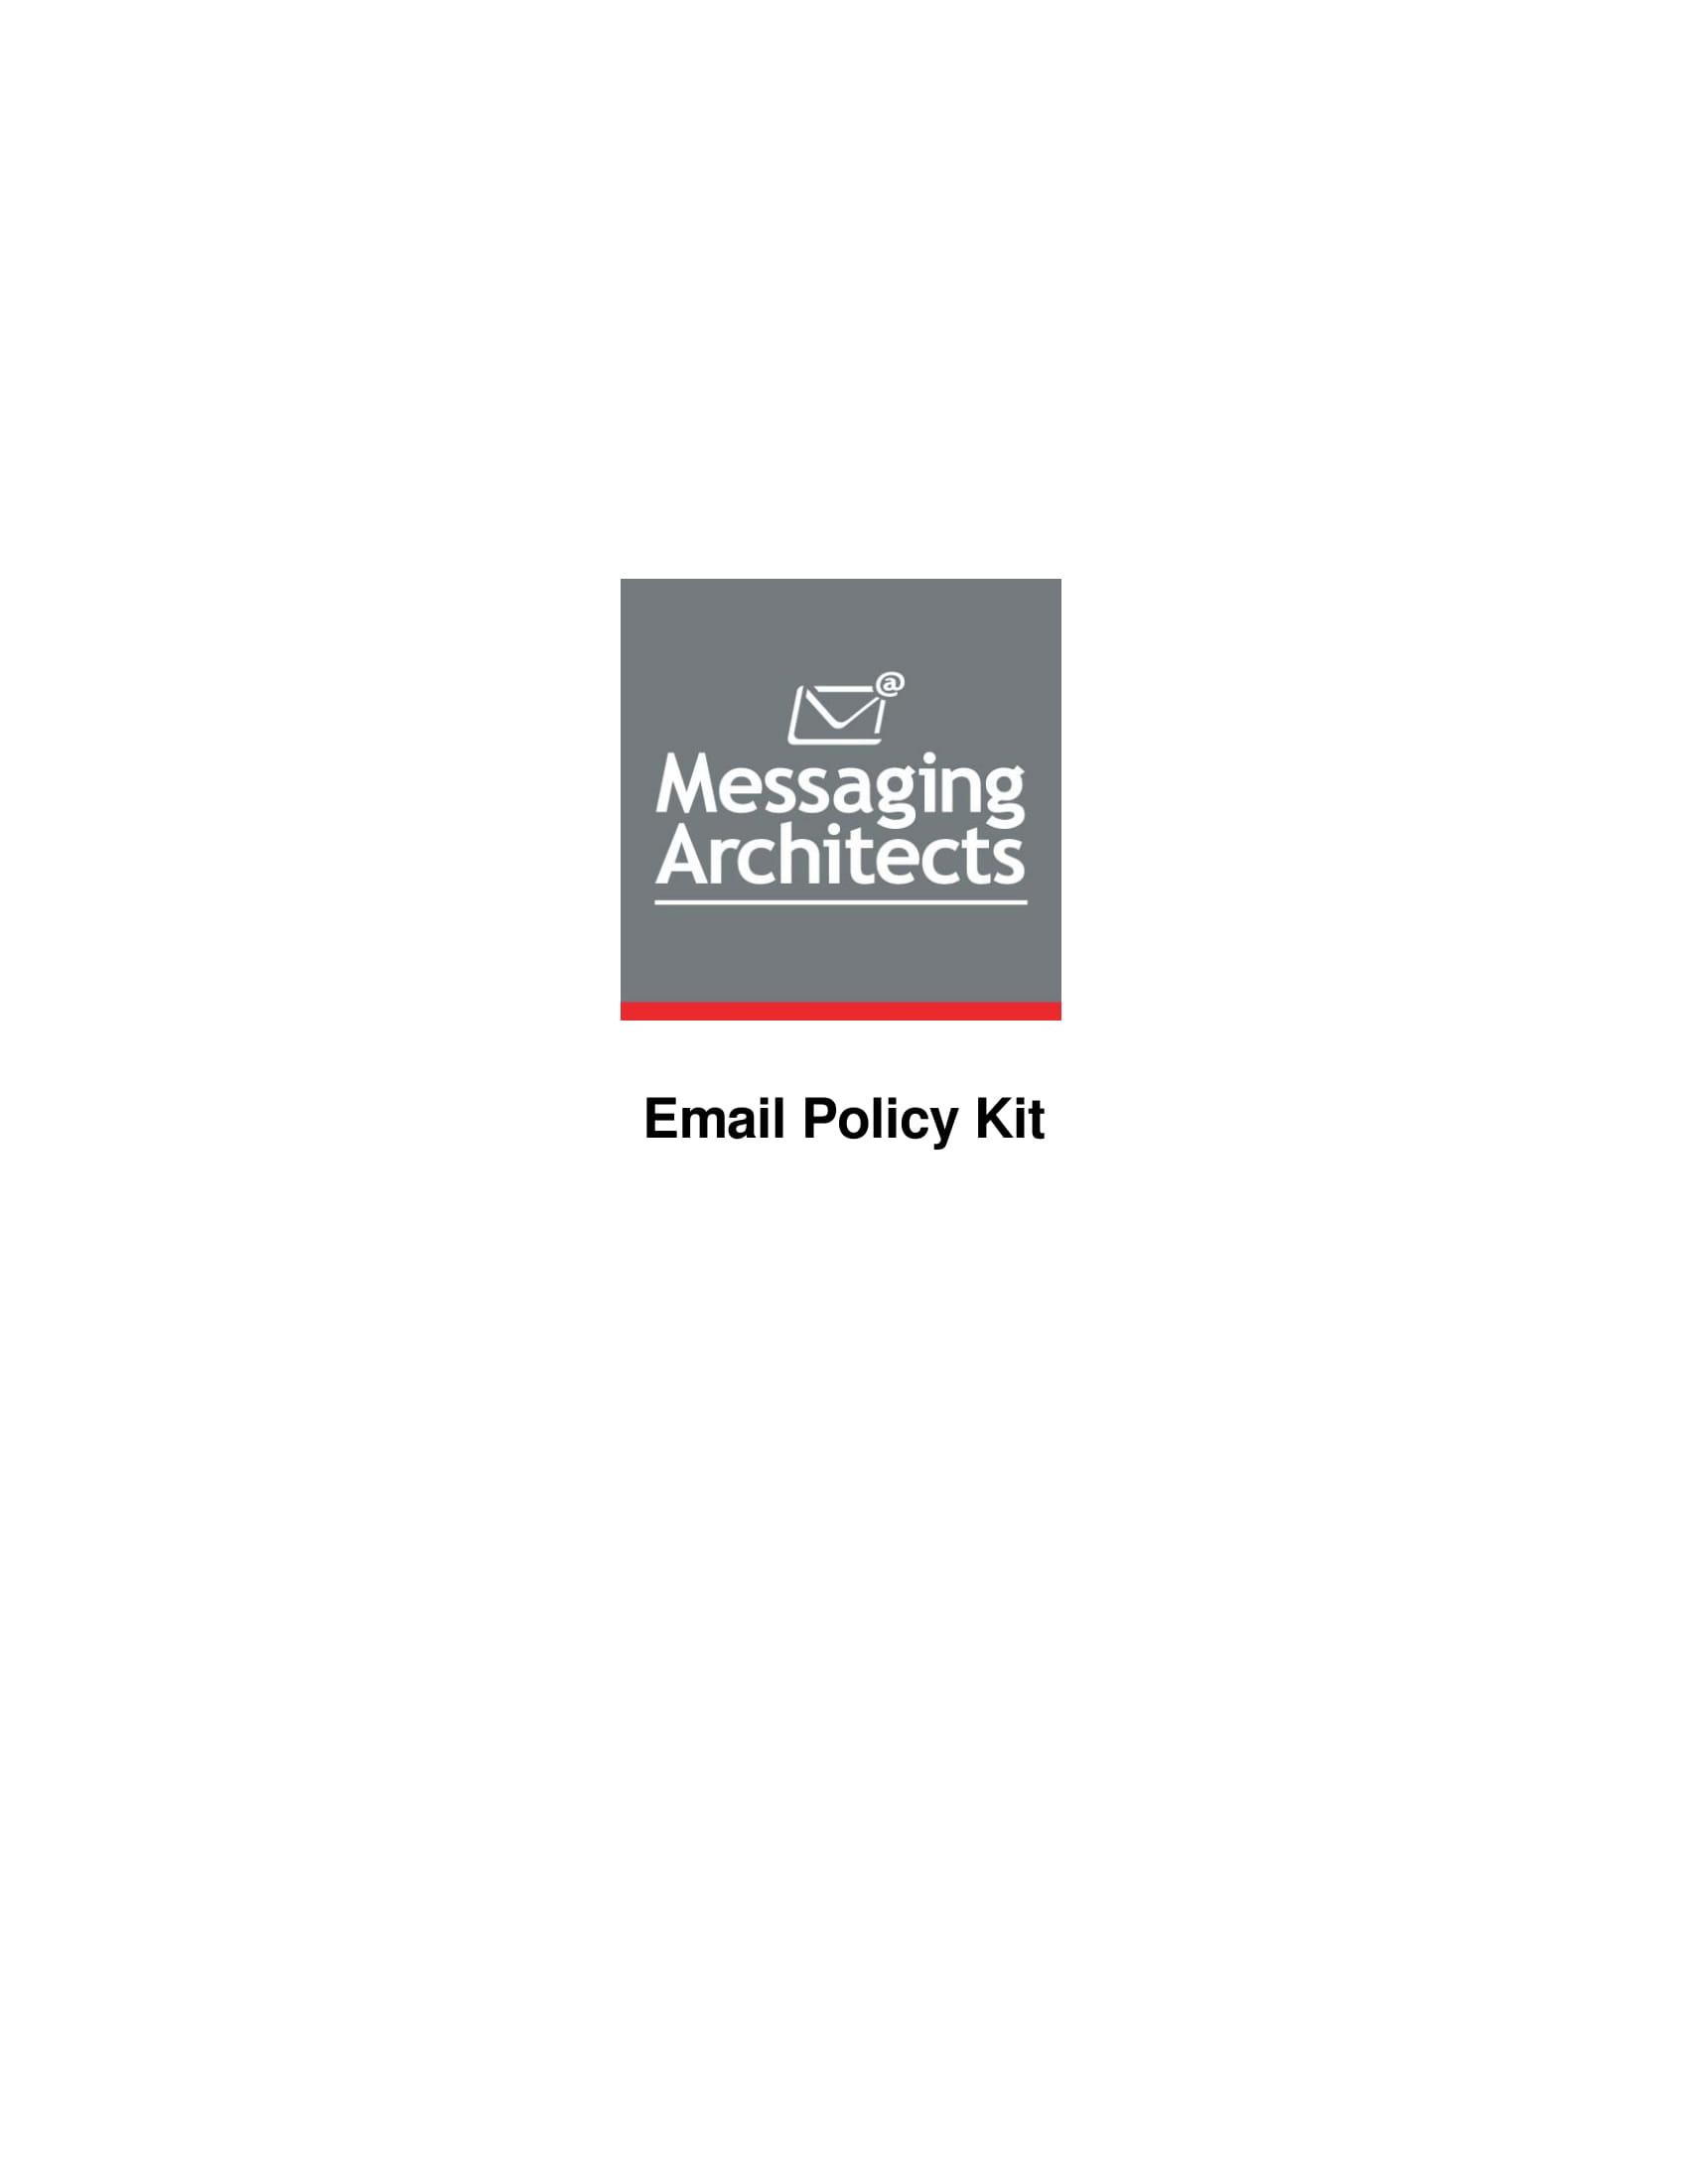 employee email policy kit example